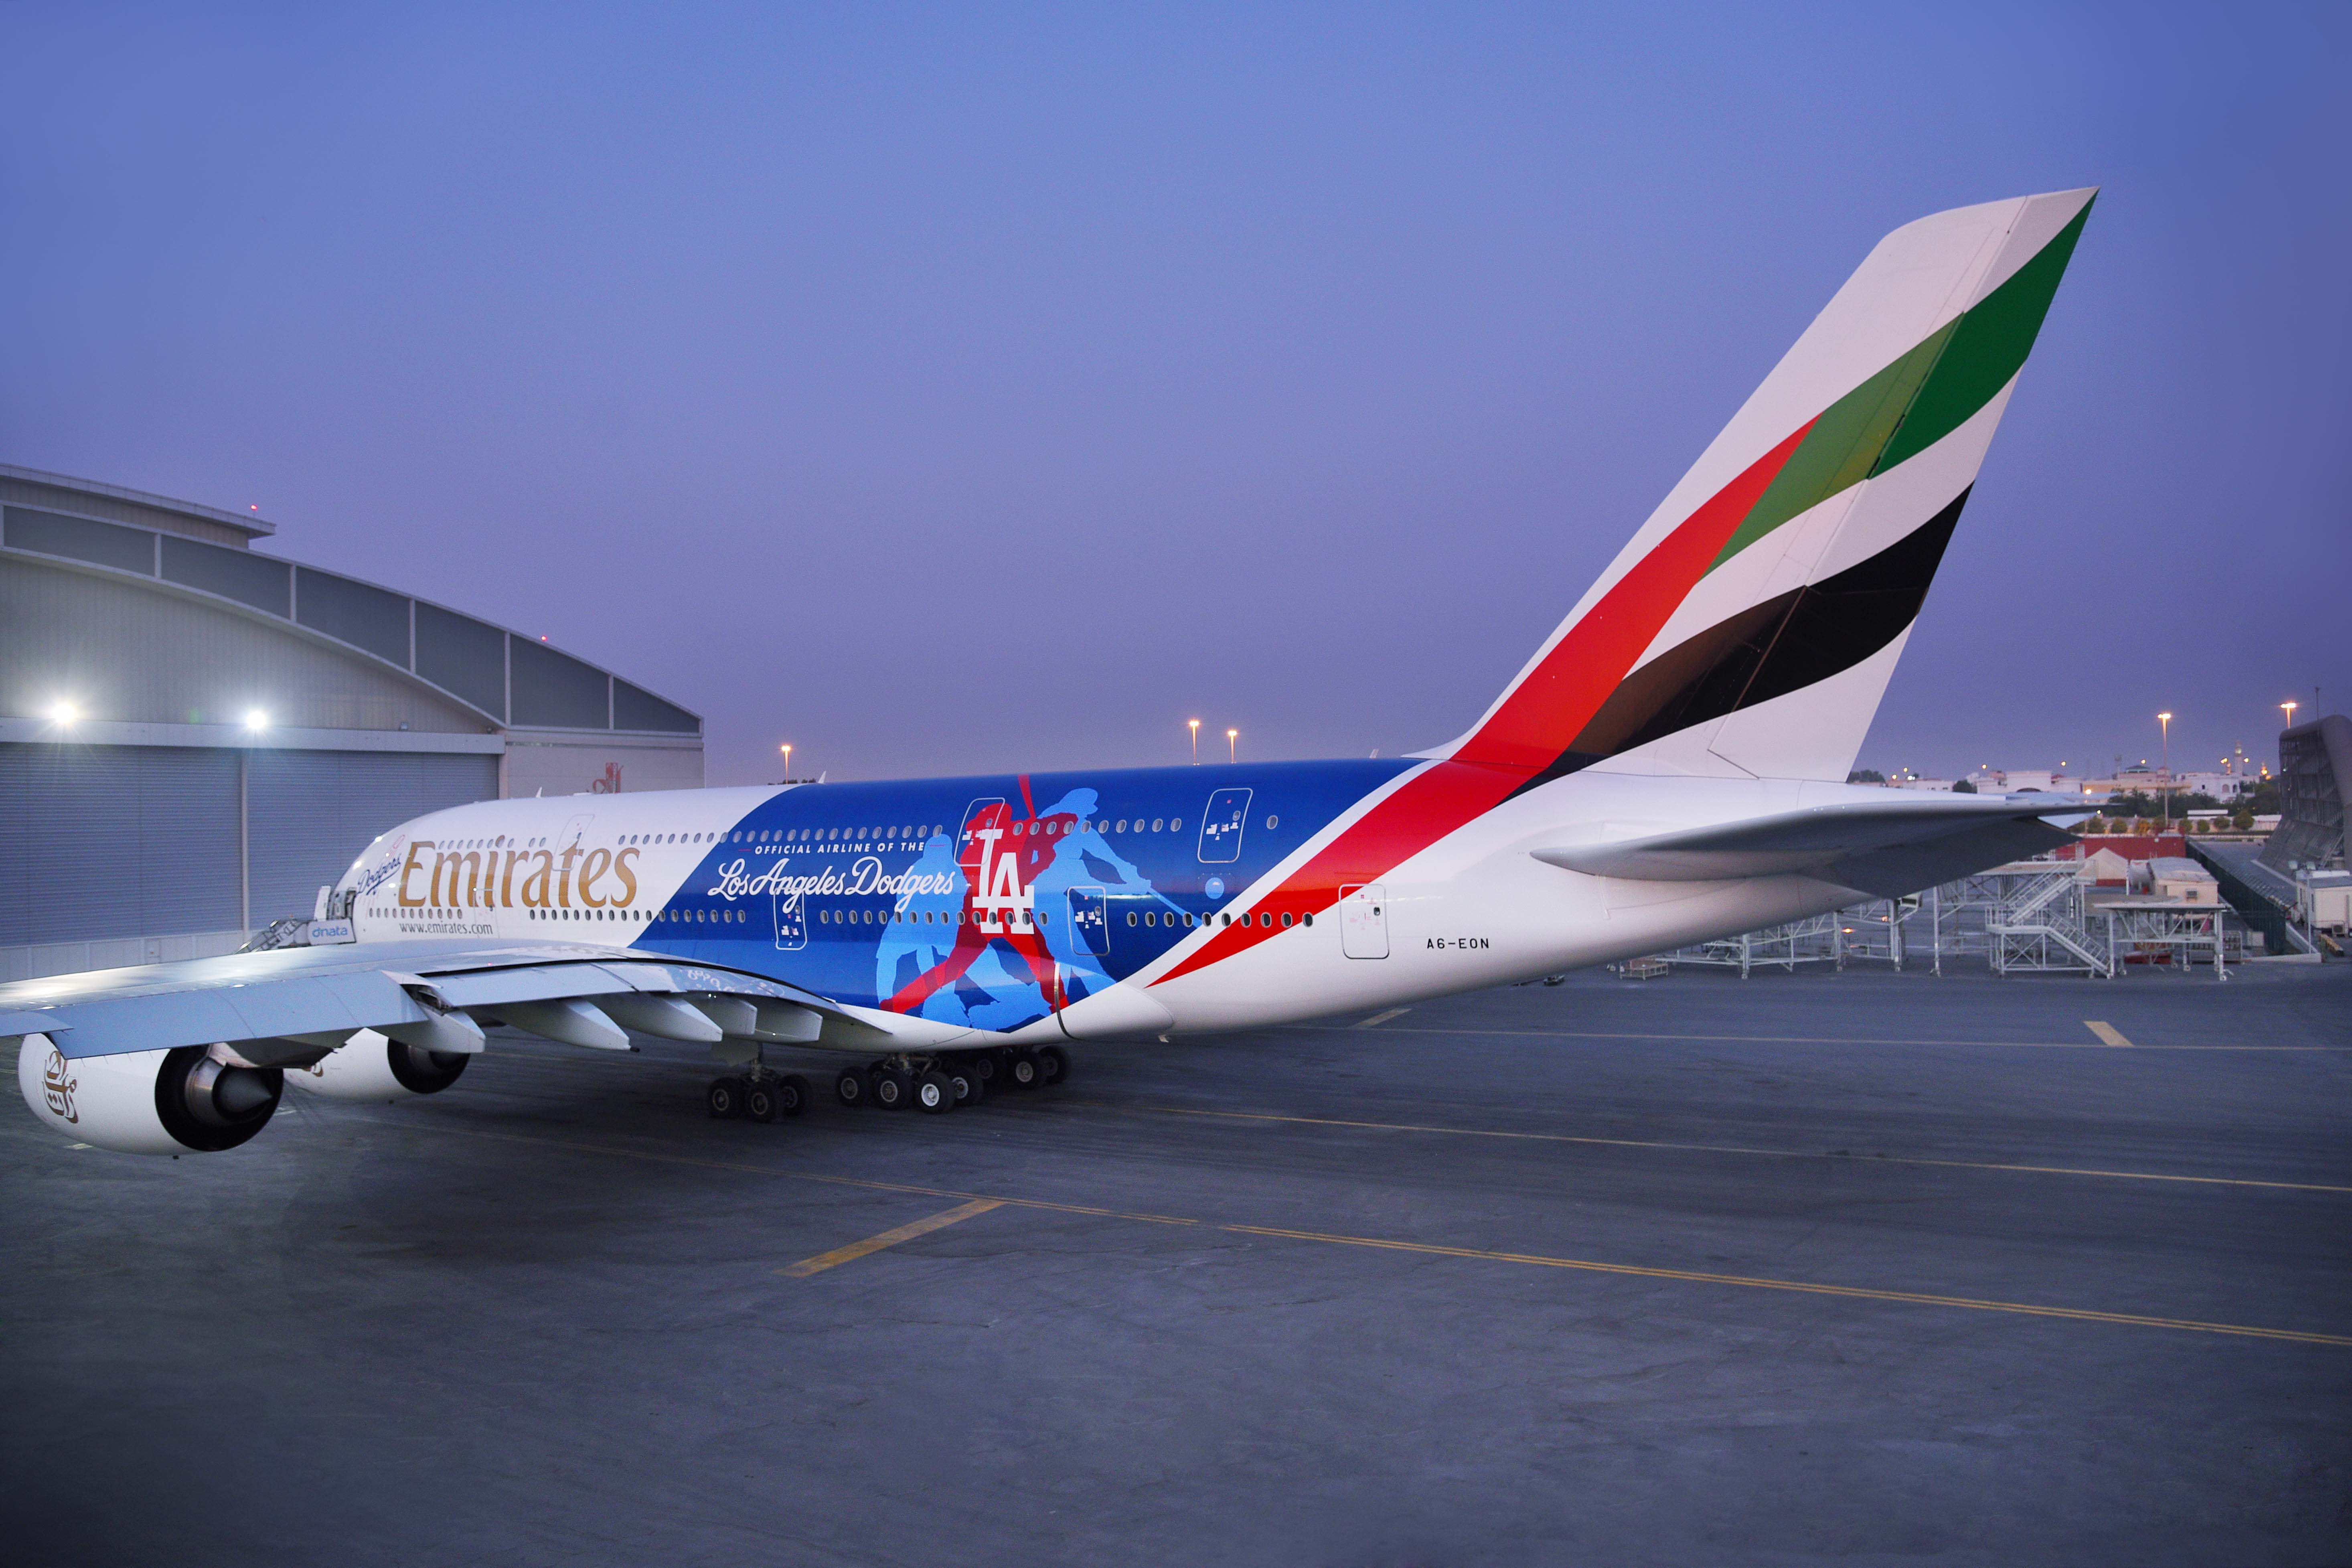 Emirates-A380-aircraft-at-Dubai-International-Airport-in-specially-designe....l